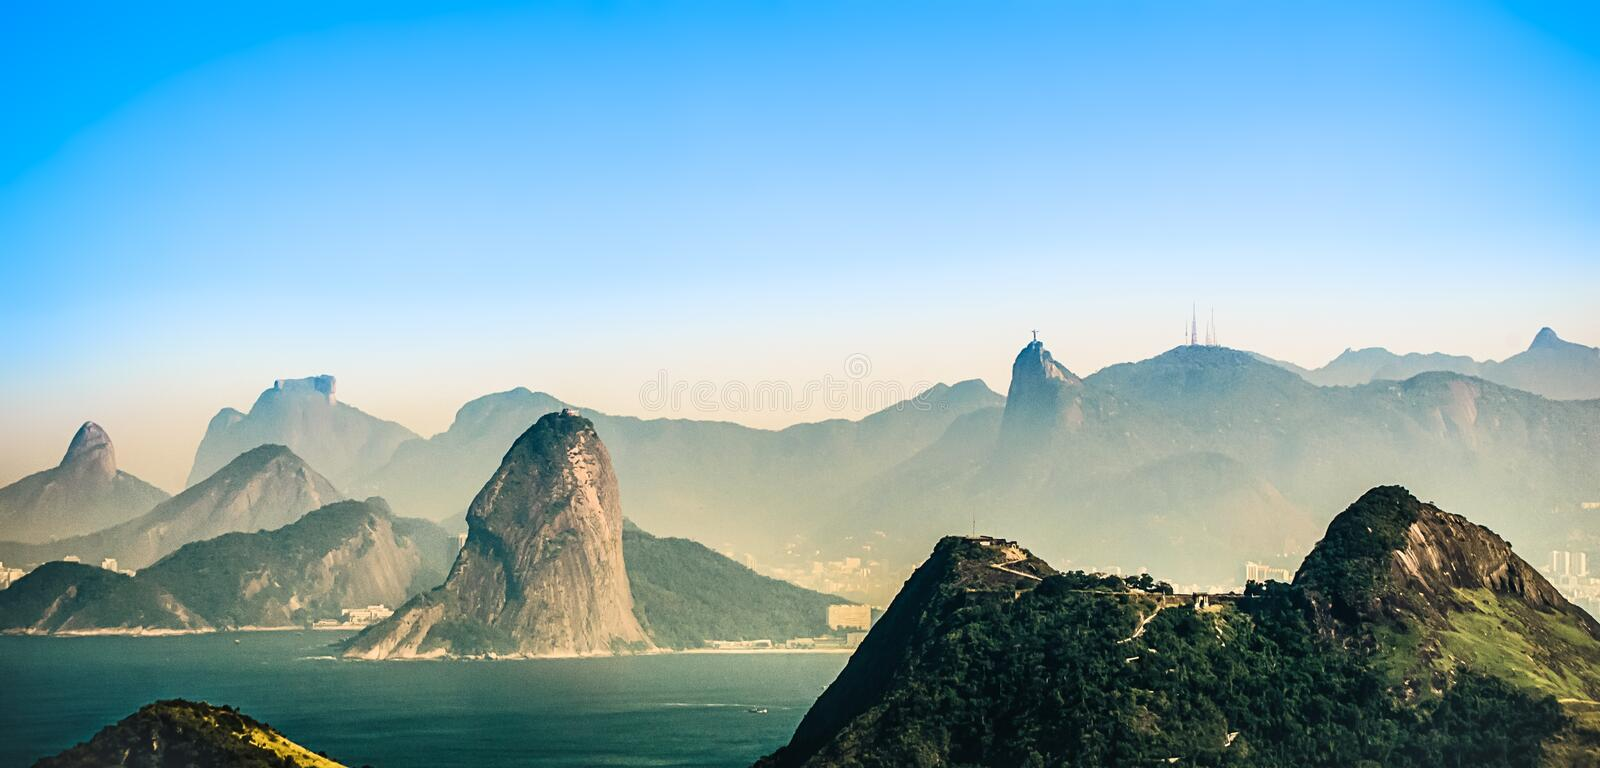 Fog Covered Mountains during Daytime royalty free stock photo